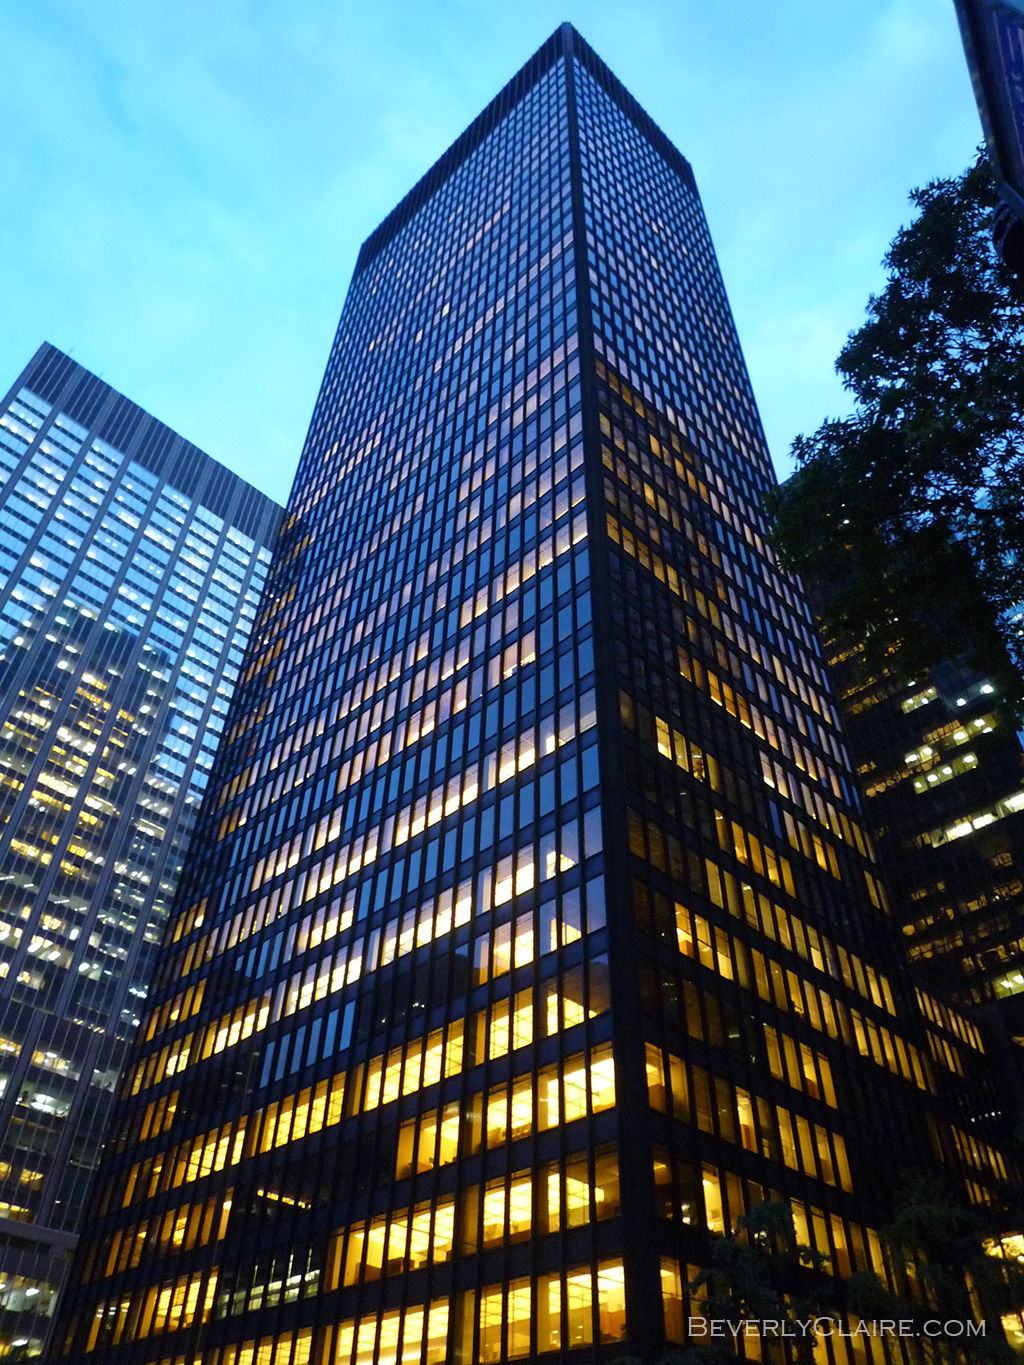 Http Designs Beverlyclaire Com The Seagram Building